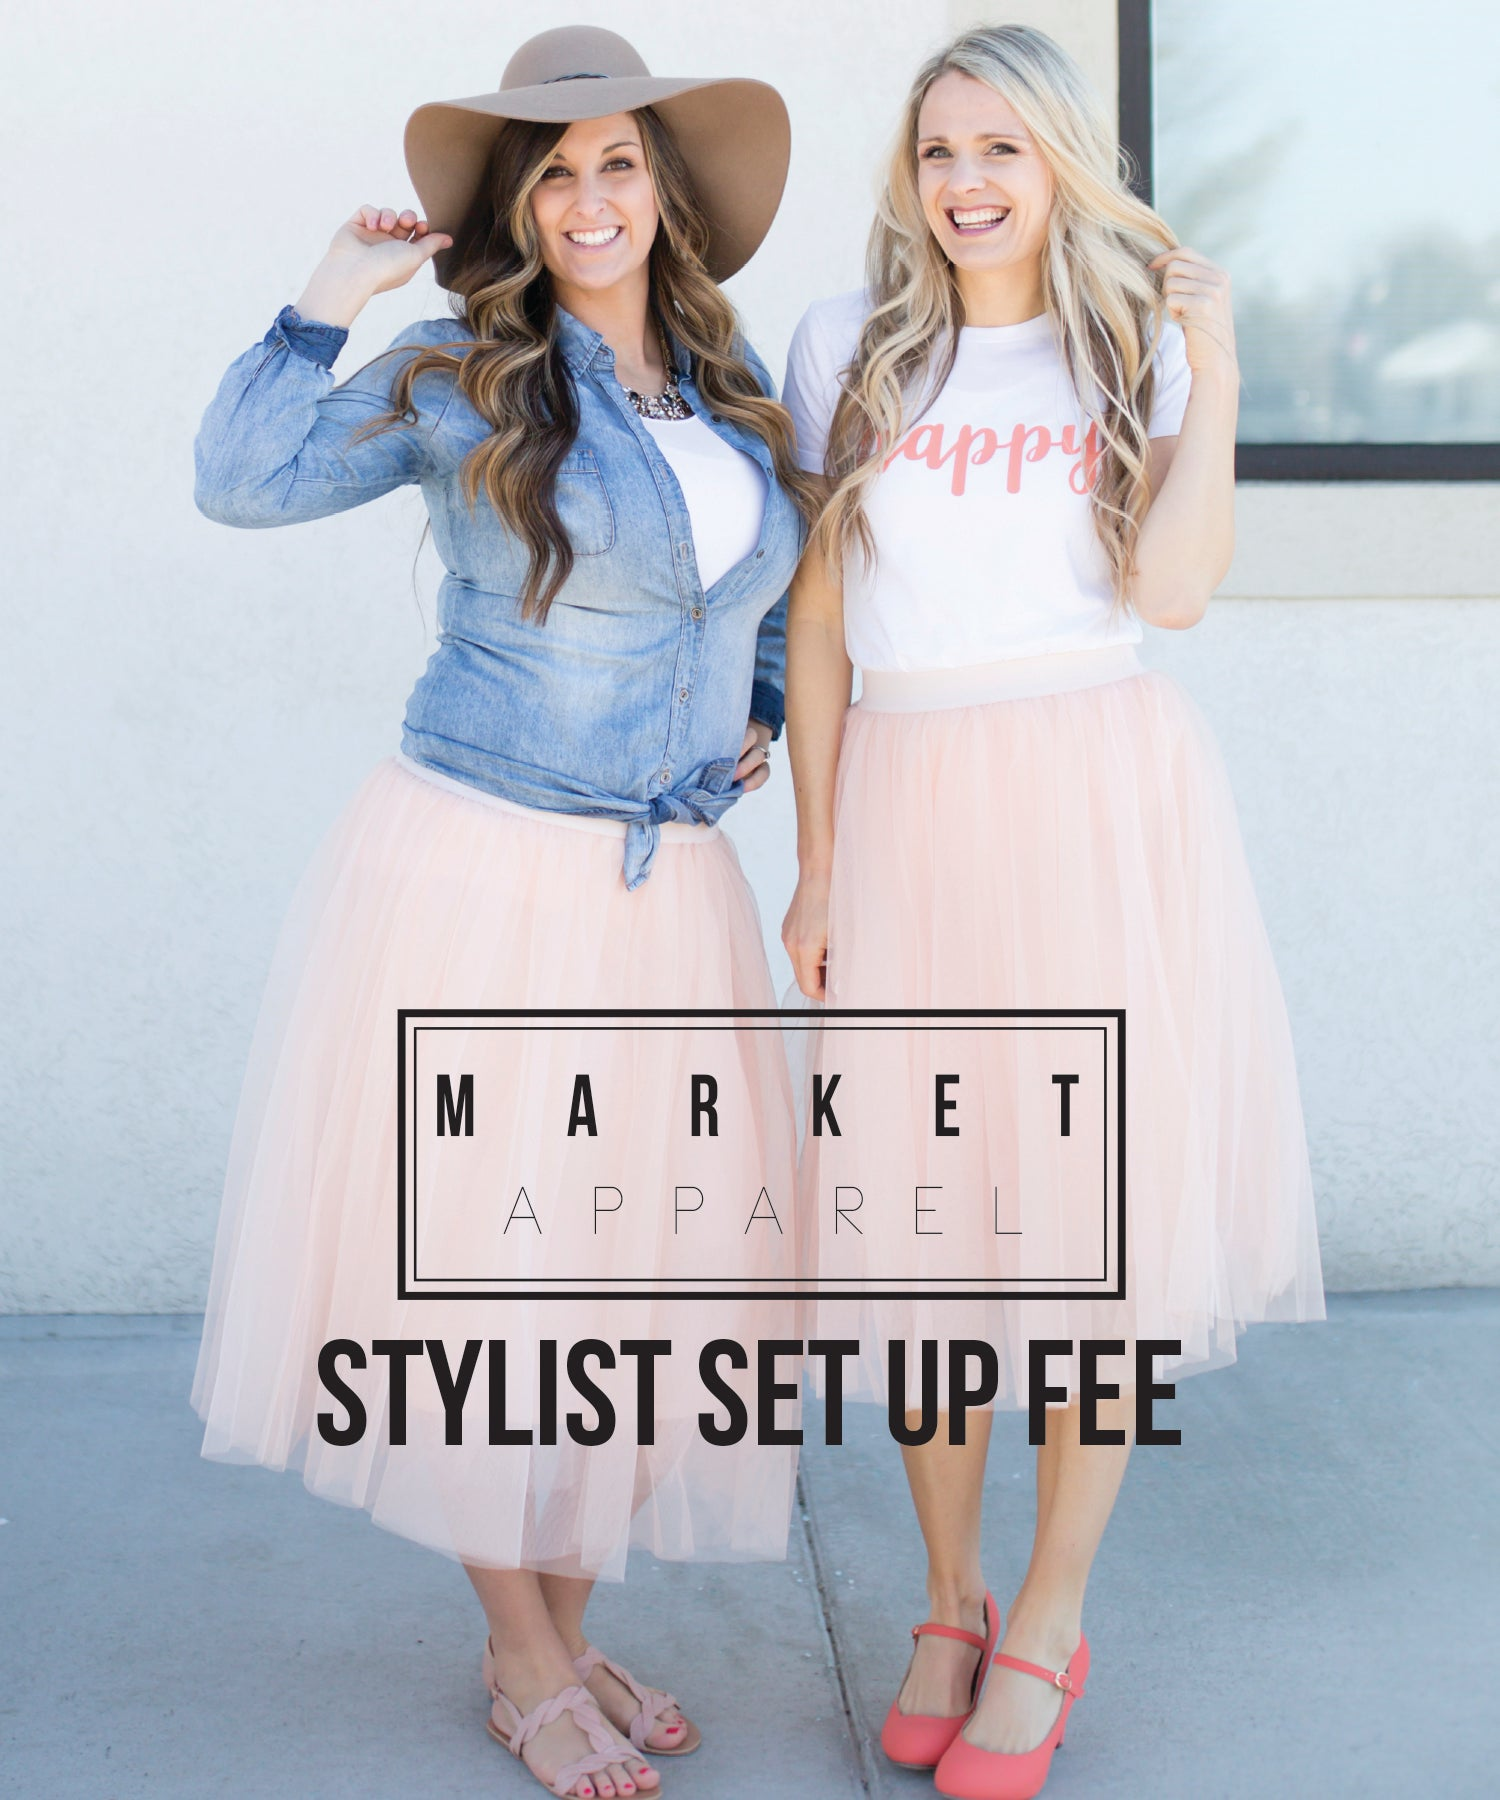 Market Apparel Stylist Start up Fee